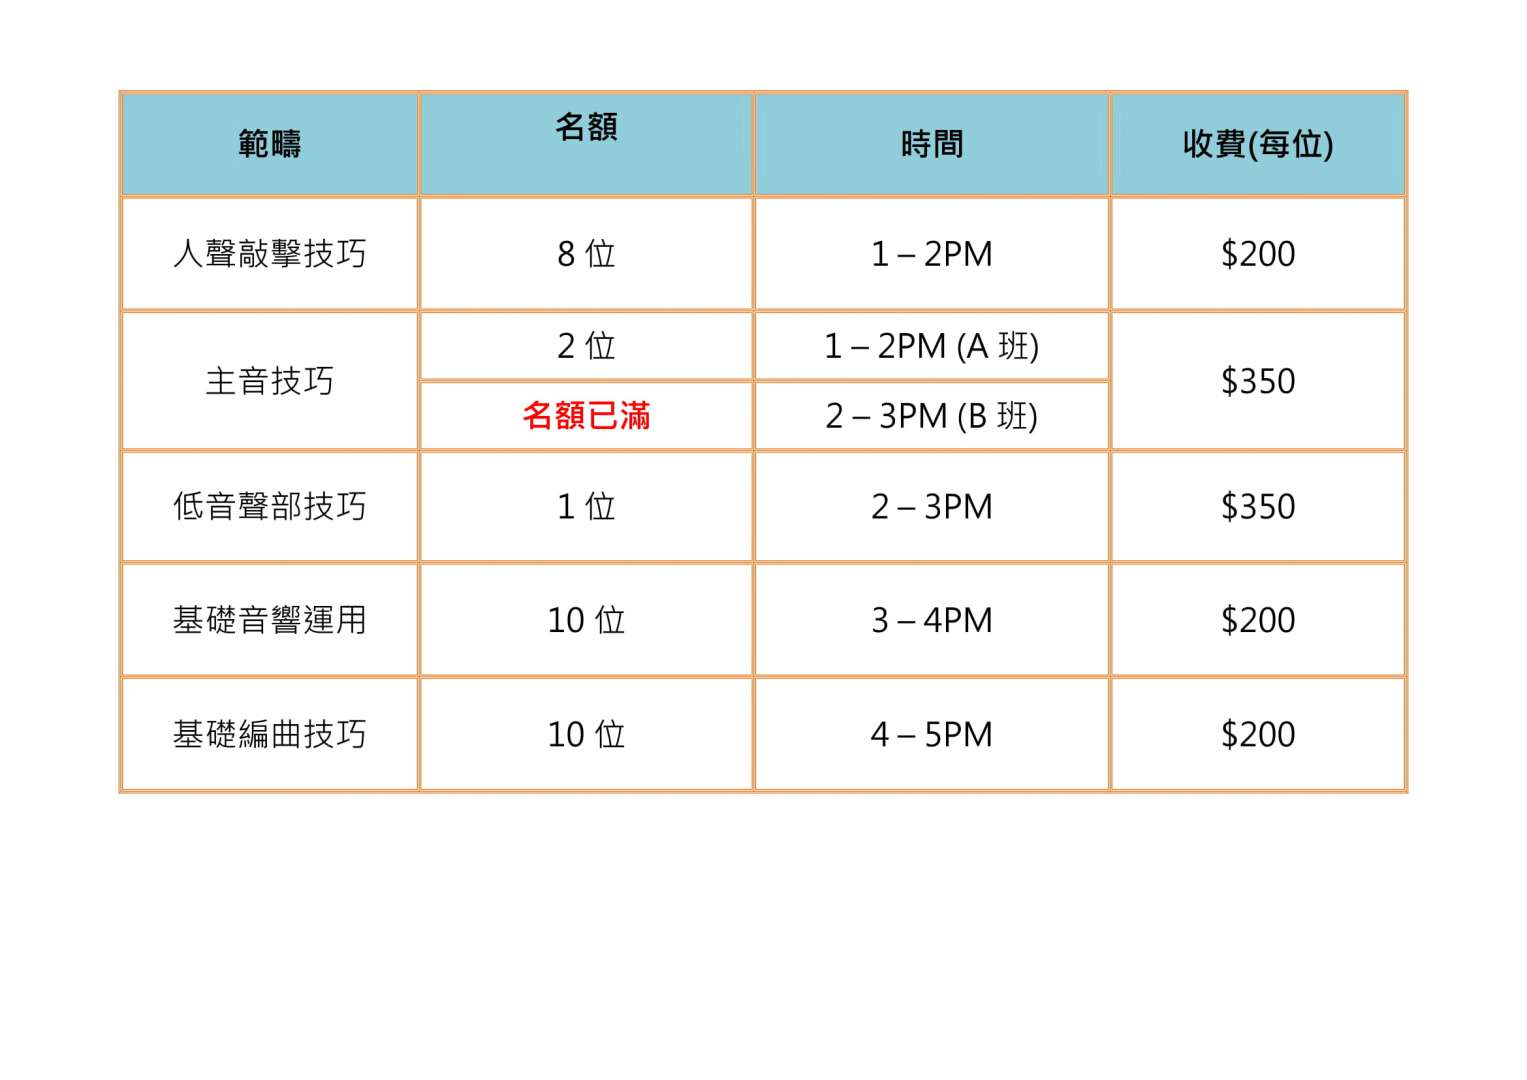 Mass Training Schedule street 20190620-1